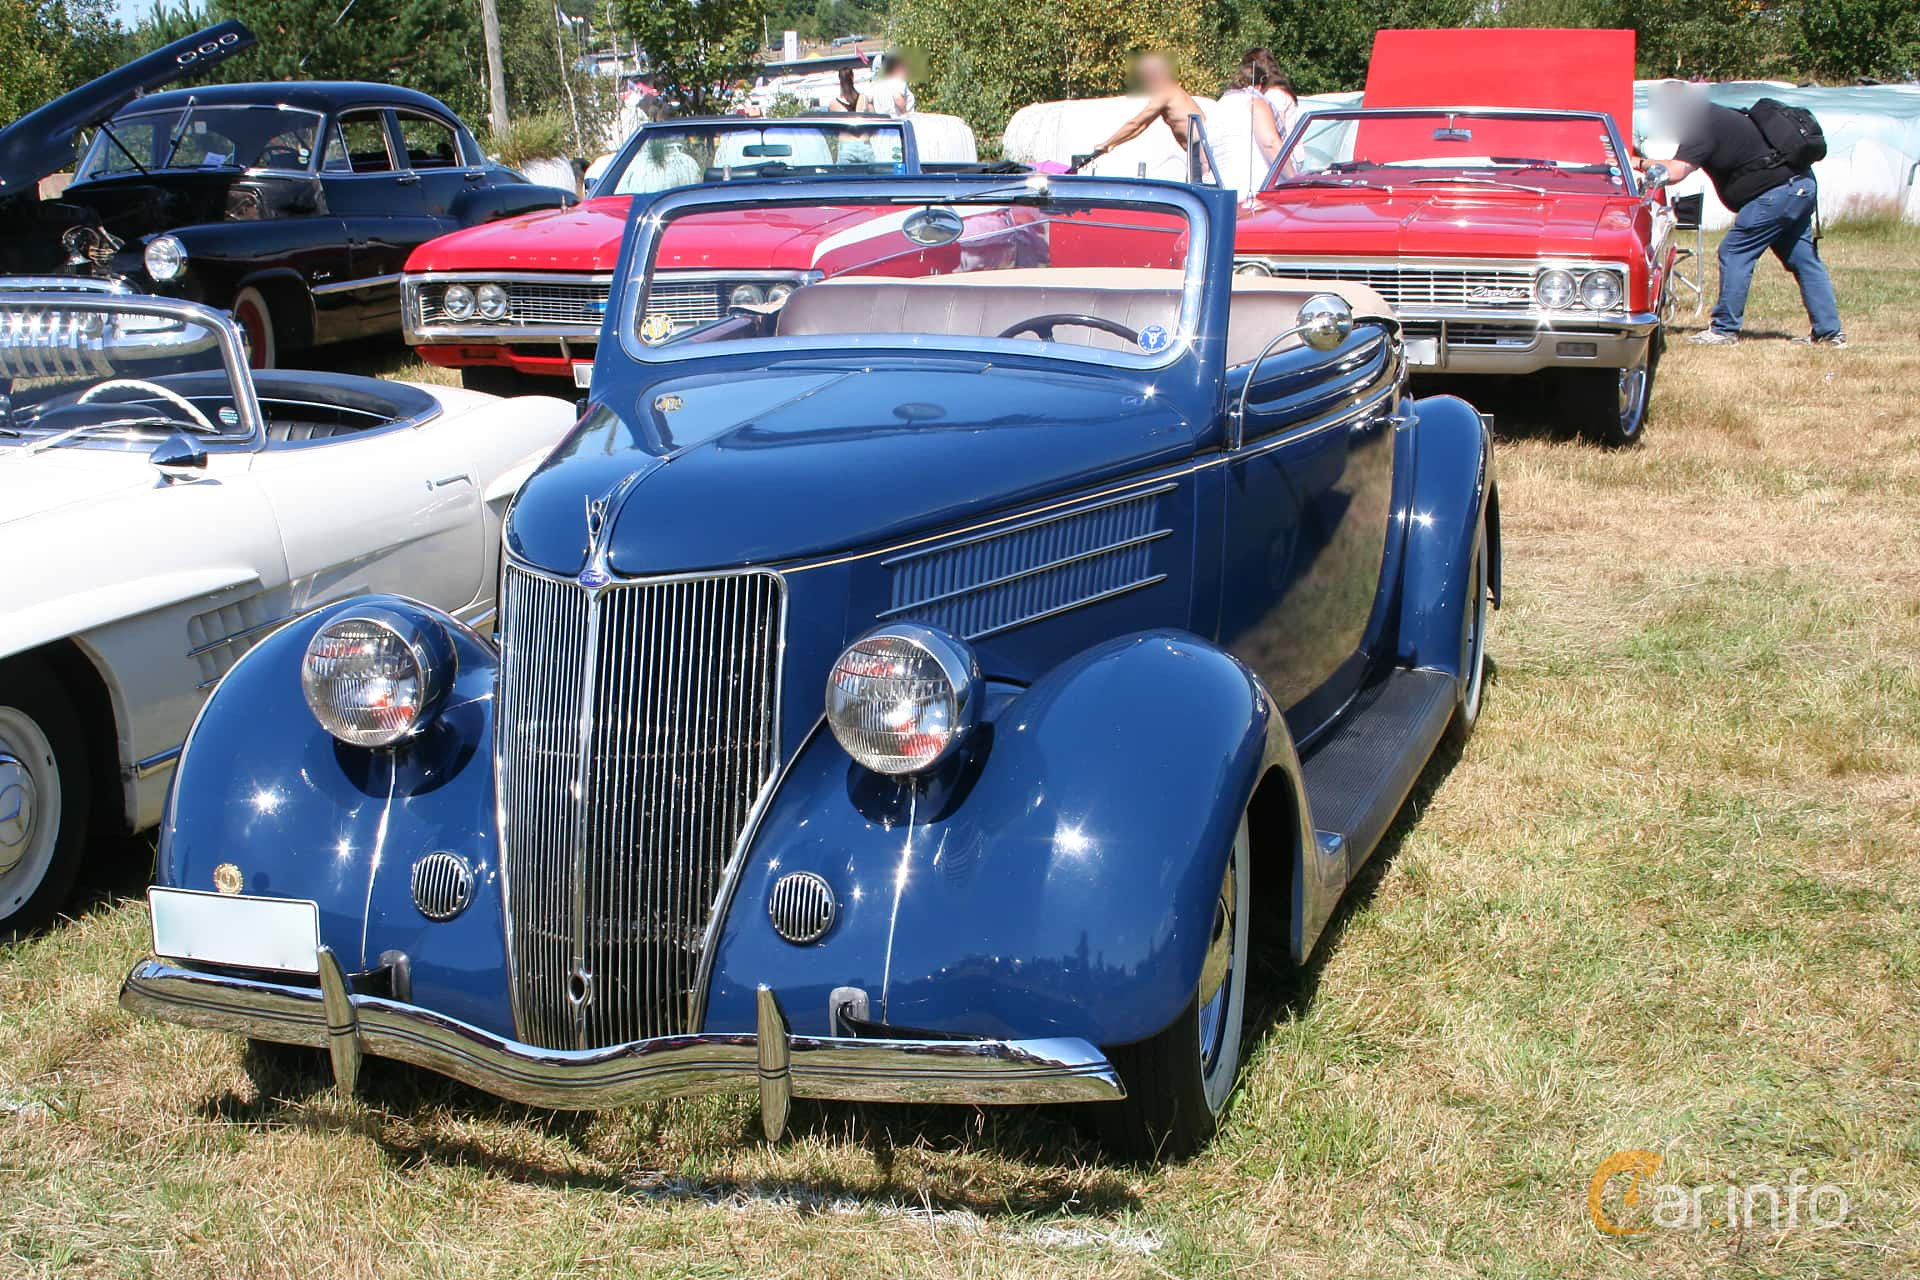 Ford Model 68 Cabriolet 3.6 V8 Manuell, 86hk, 1936 at Wheels & Wings 2014